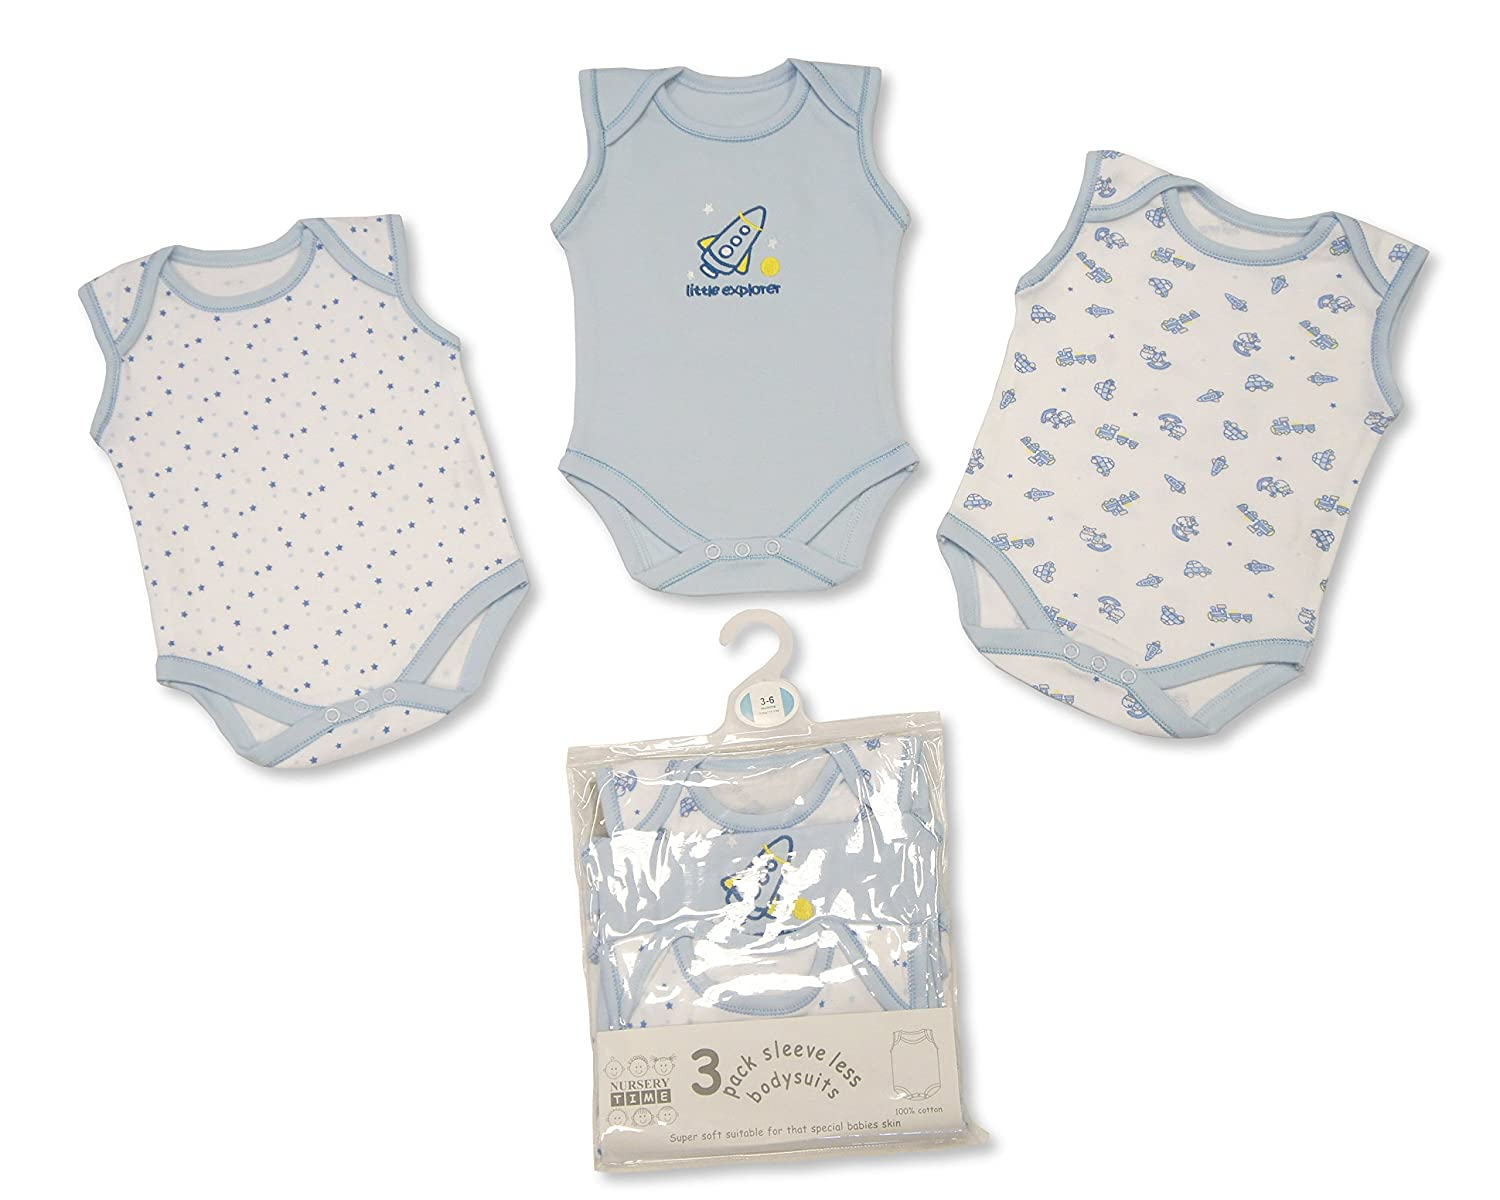 Girls' Clothing (newborn-5t) 100% Quality Baby Girls Short Sleeve Vests 0-3 Months X 4 We Take Customers As Our Gods